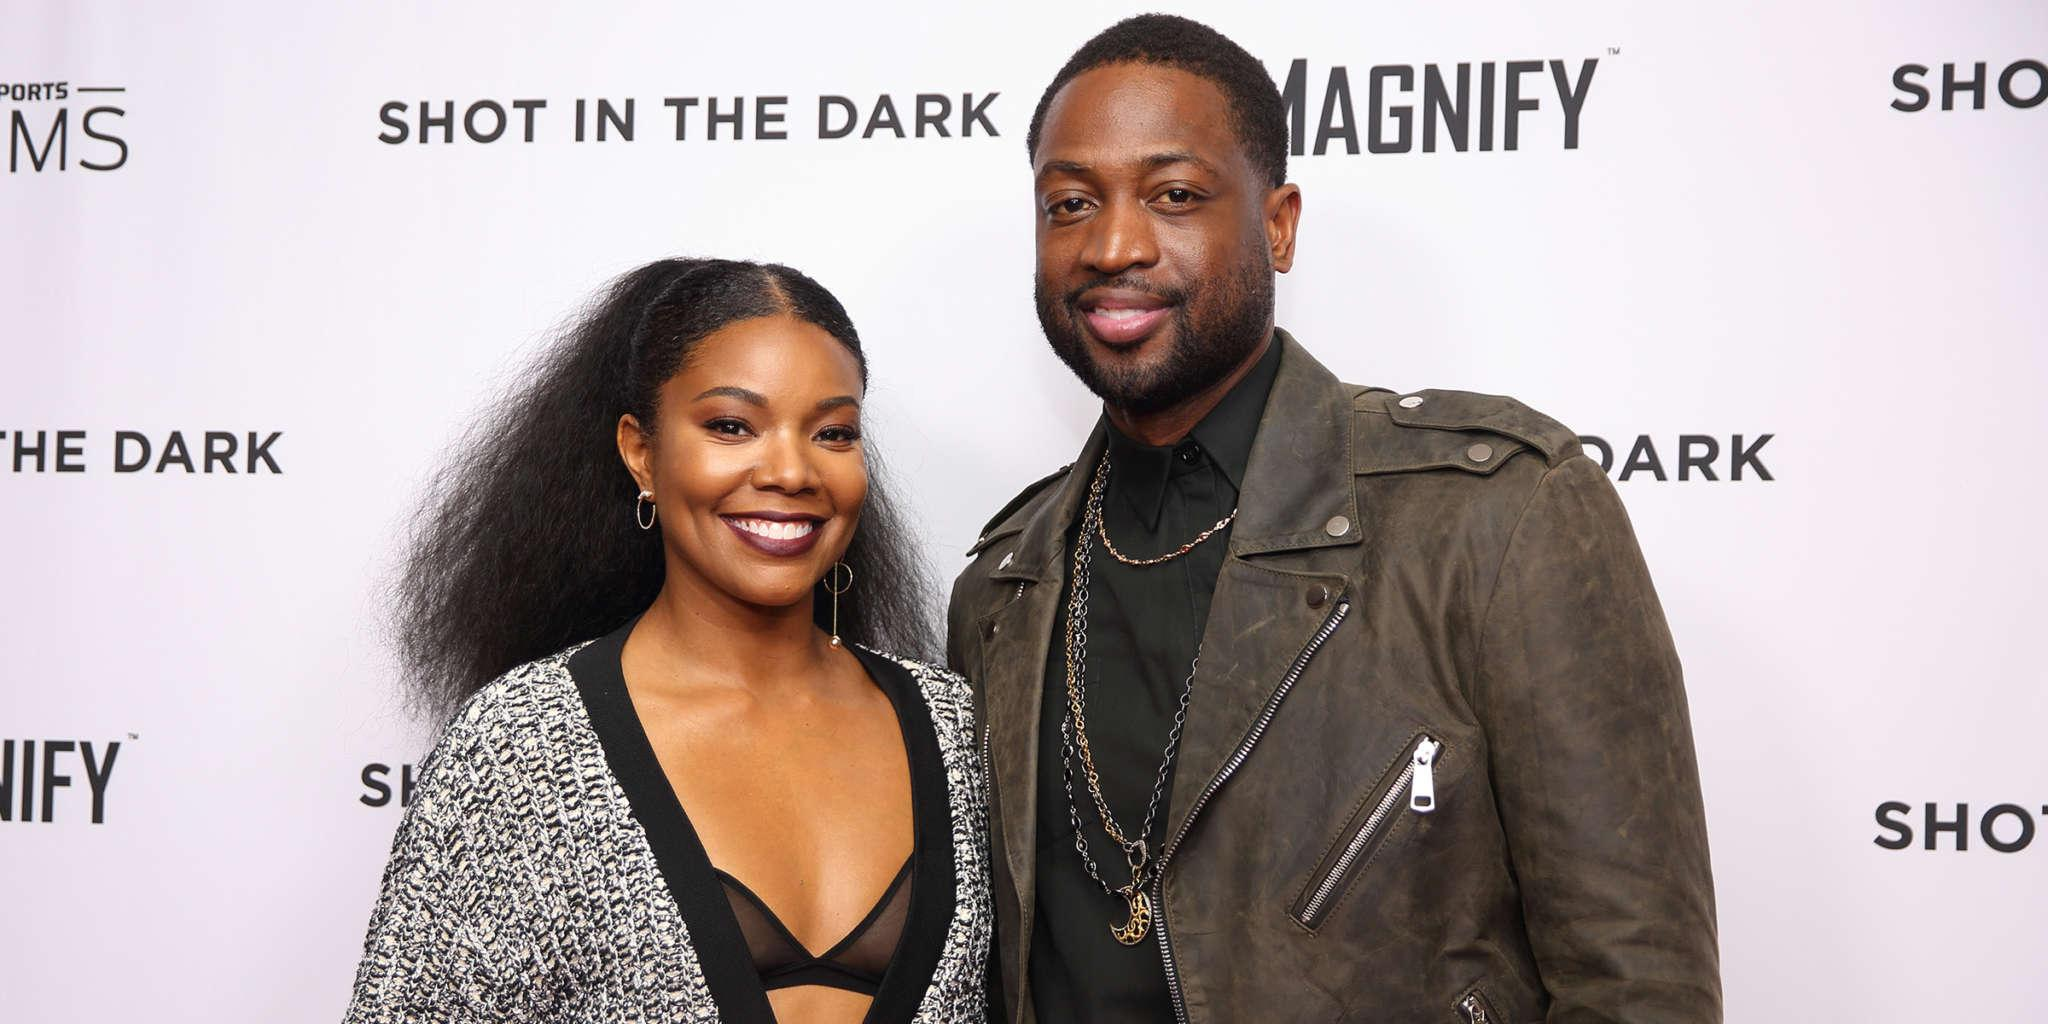 Dwyane Wade Triggers A Debate Among Fans After Showing Support For 'His Girls'